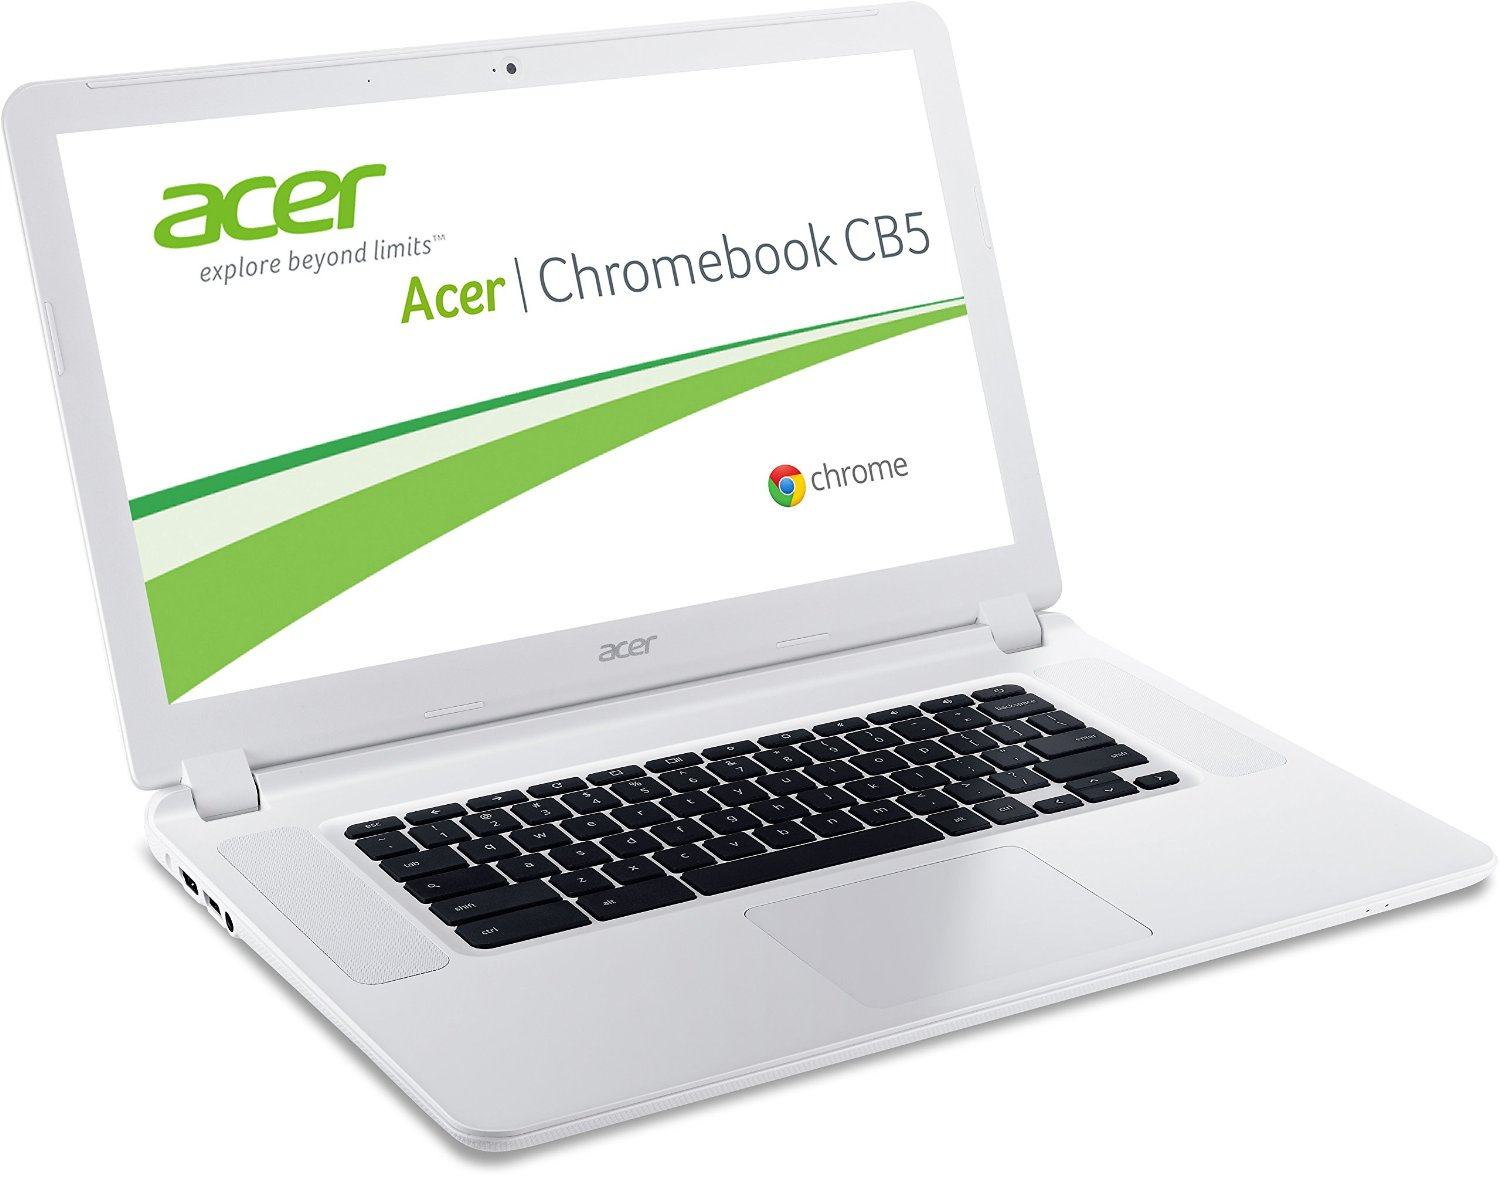 The Acer Chromebook 11